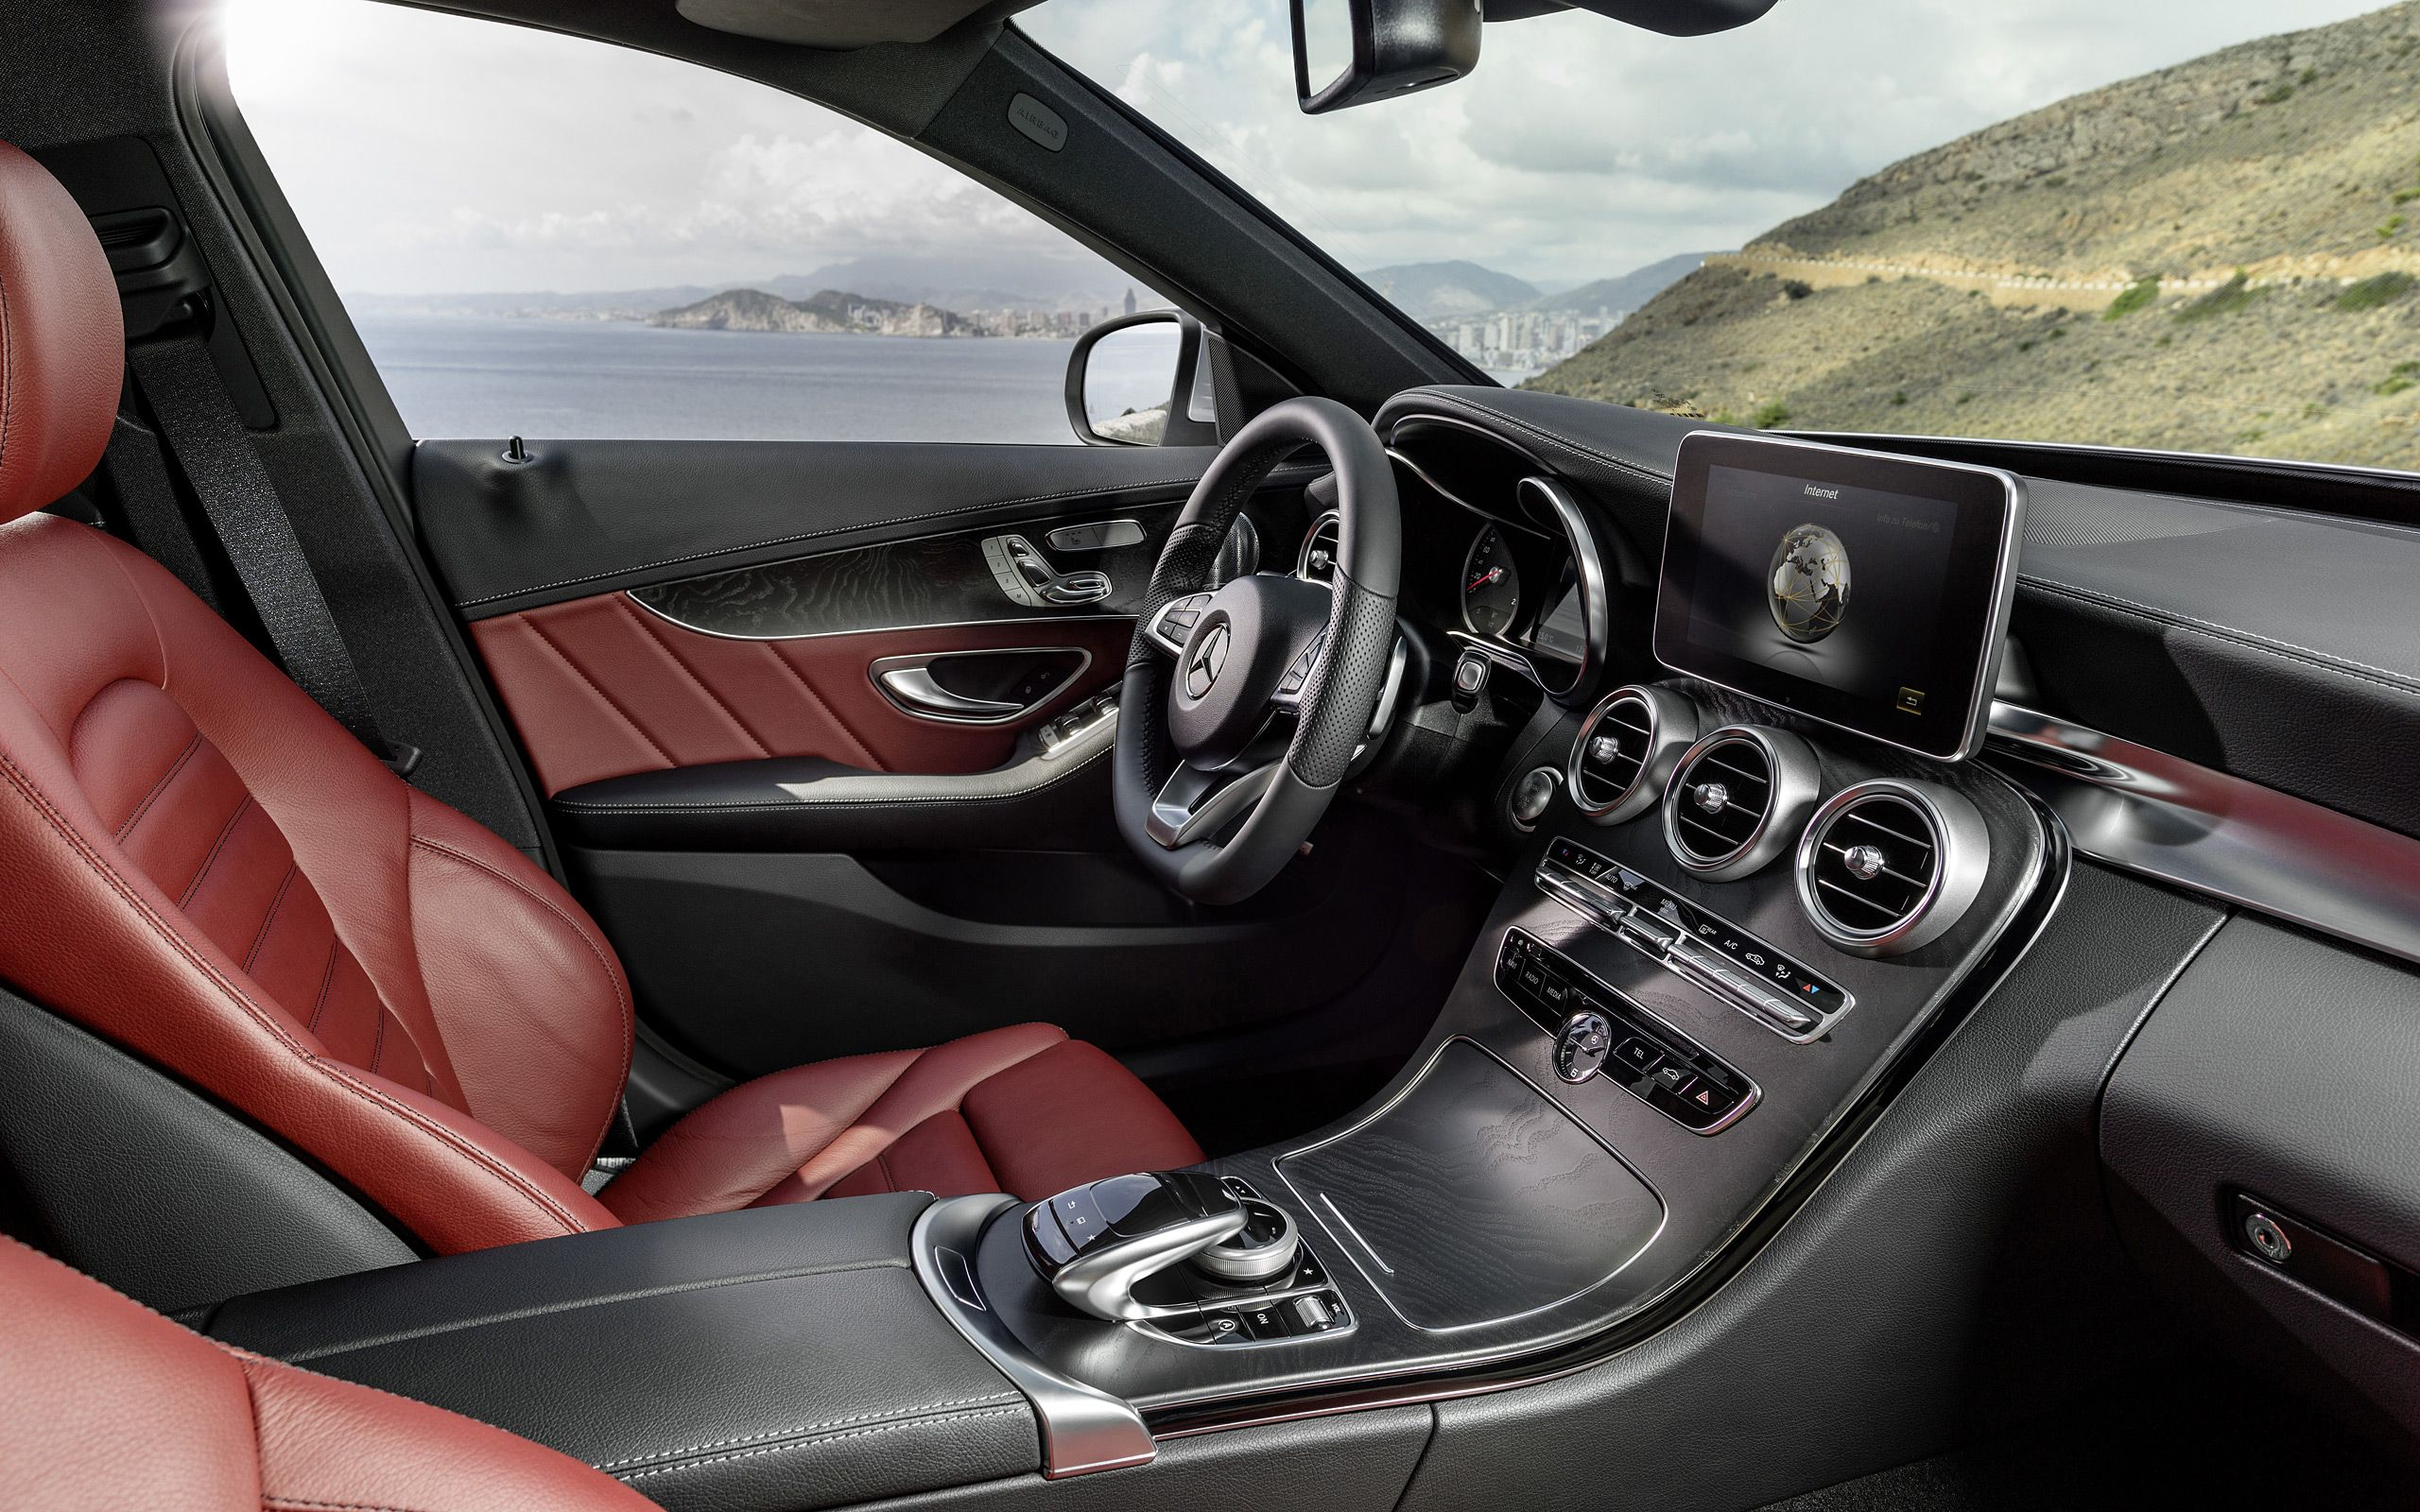 2015 Mercedes-Benz C-Class Interieur | Commands | Pinterest